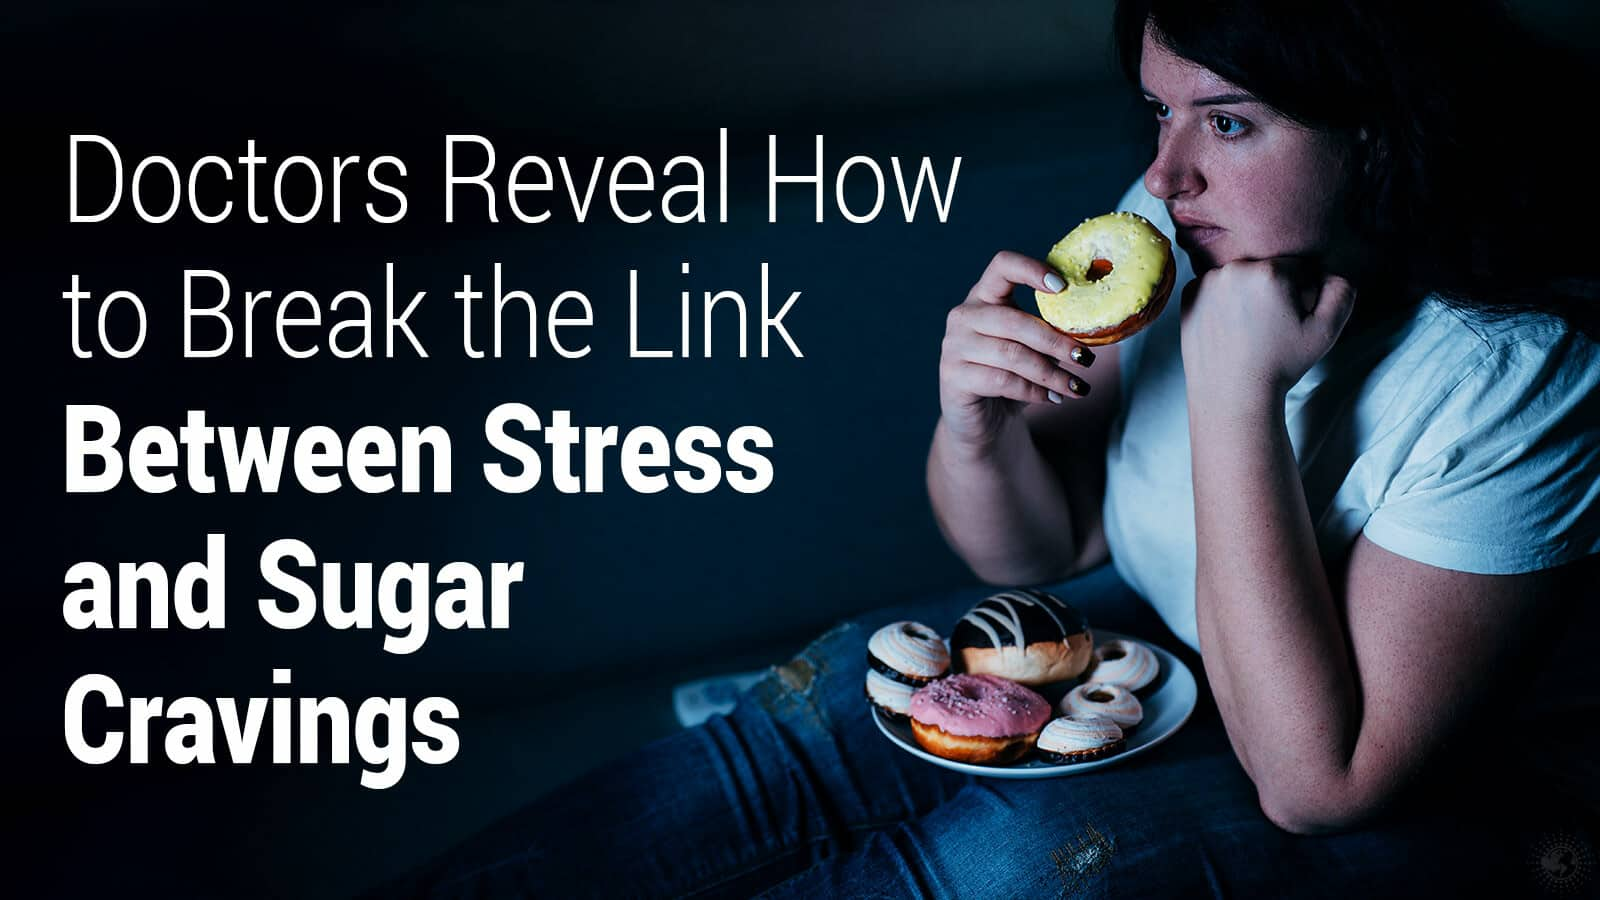 Doctors Reveal How to Break the Link Between Stress and Sugar Cravings